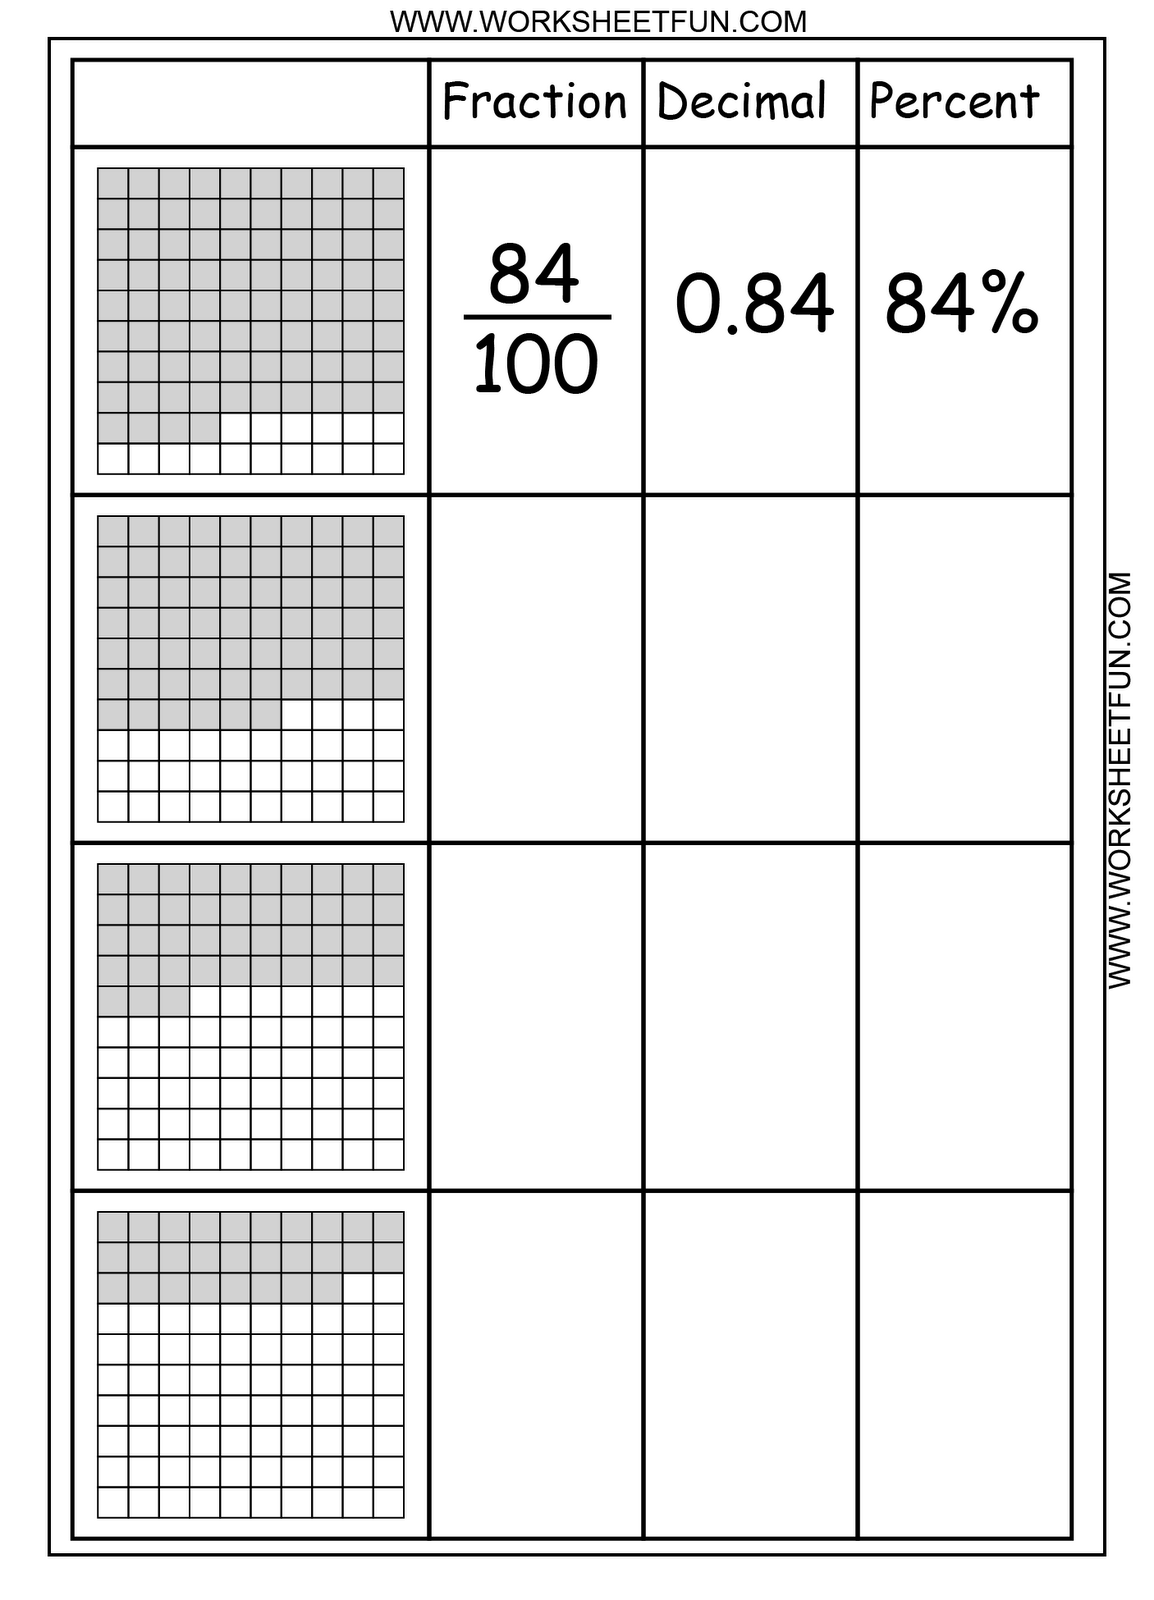 math worksheet : 1000 images about fractions decimals percents on pinterest  : Fractions Decimals And Percents Worksheets